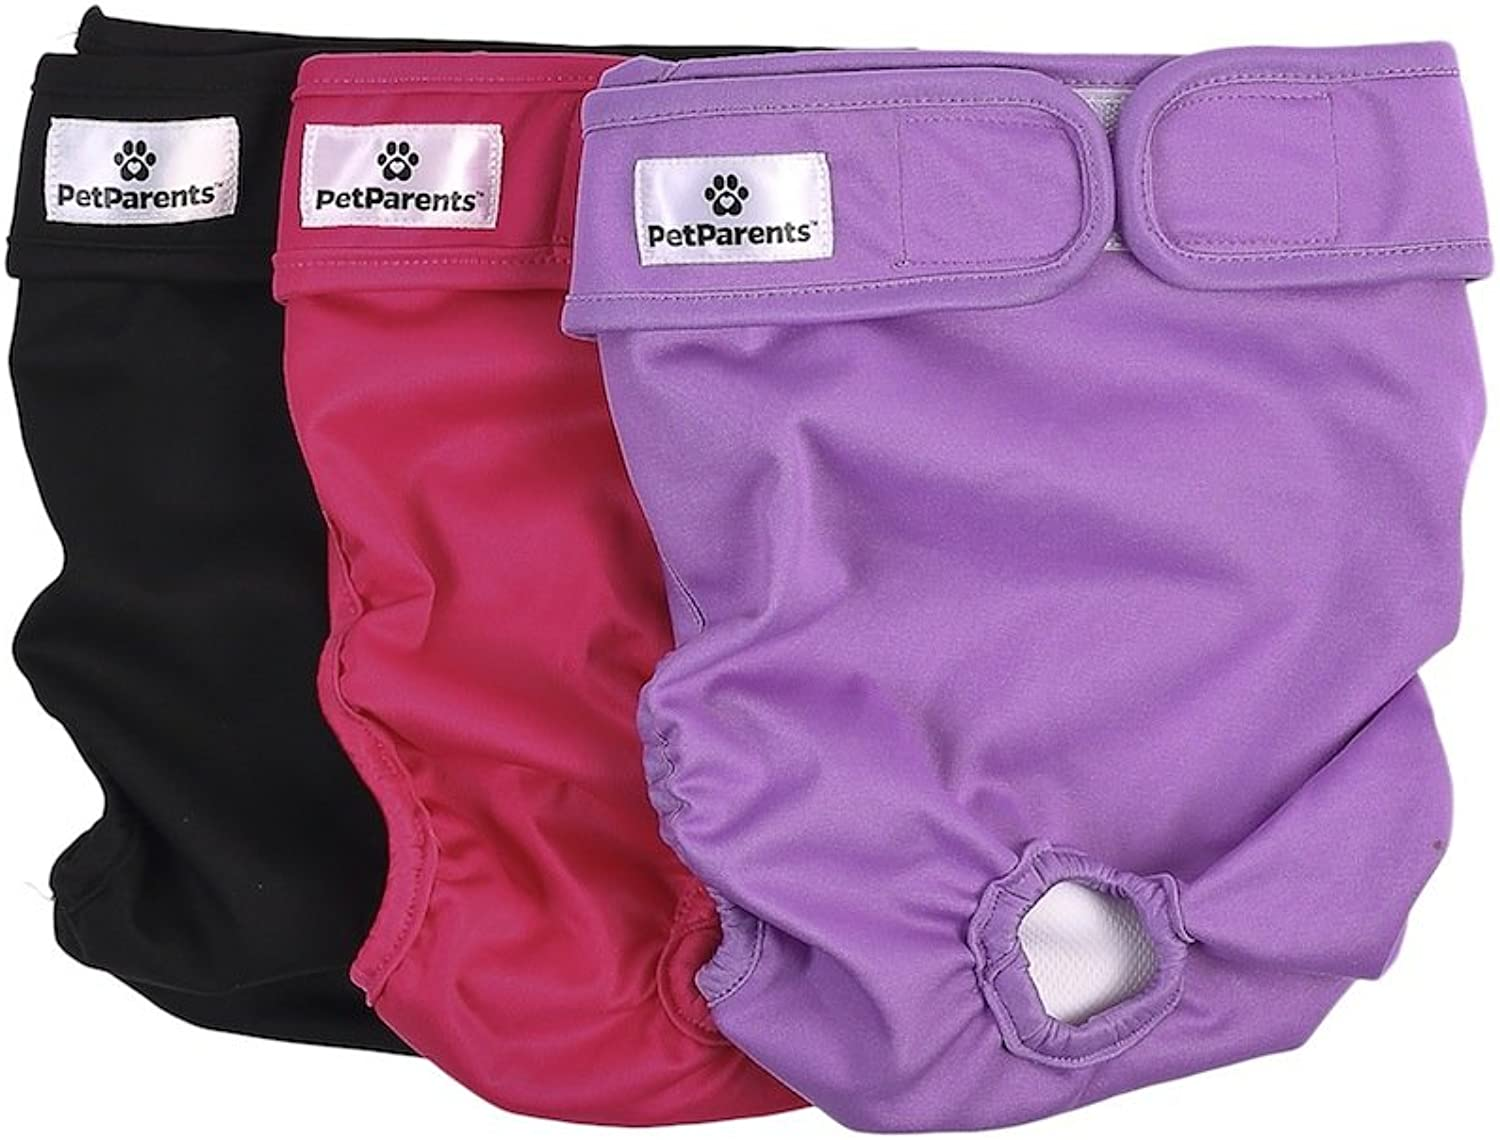 Pet Parents Washable Dog Diapers (3pack) of Doggie Diapers, color  Princess, XLarge Dog Diapers